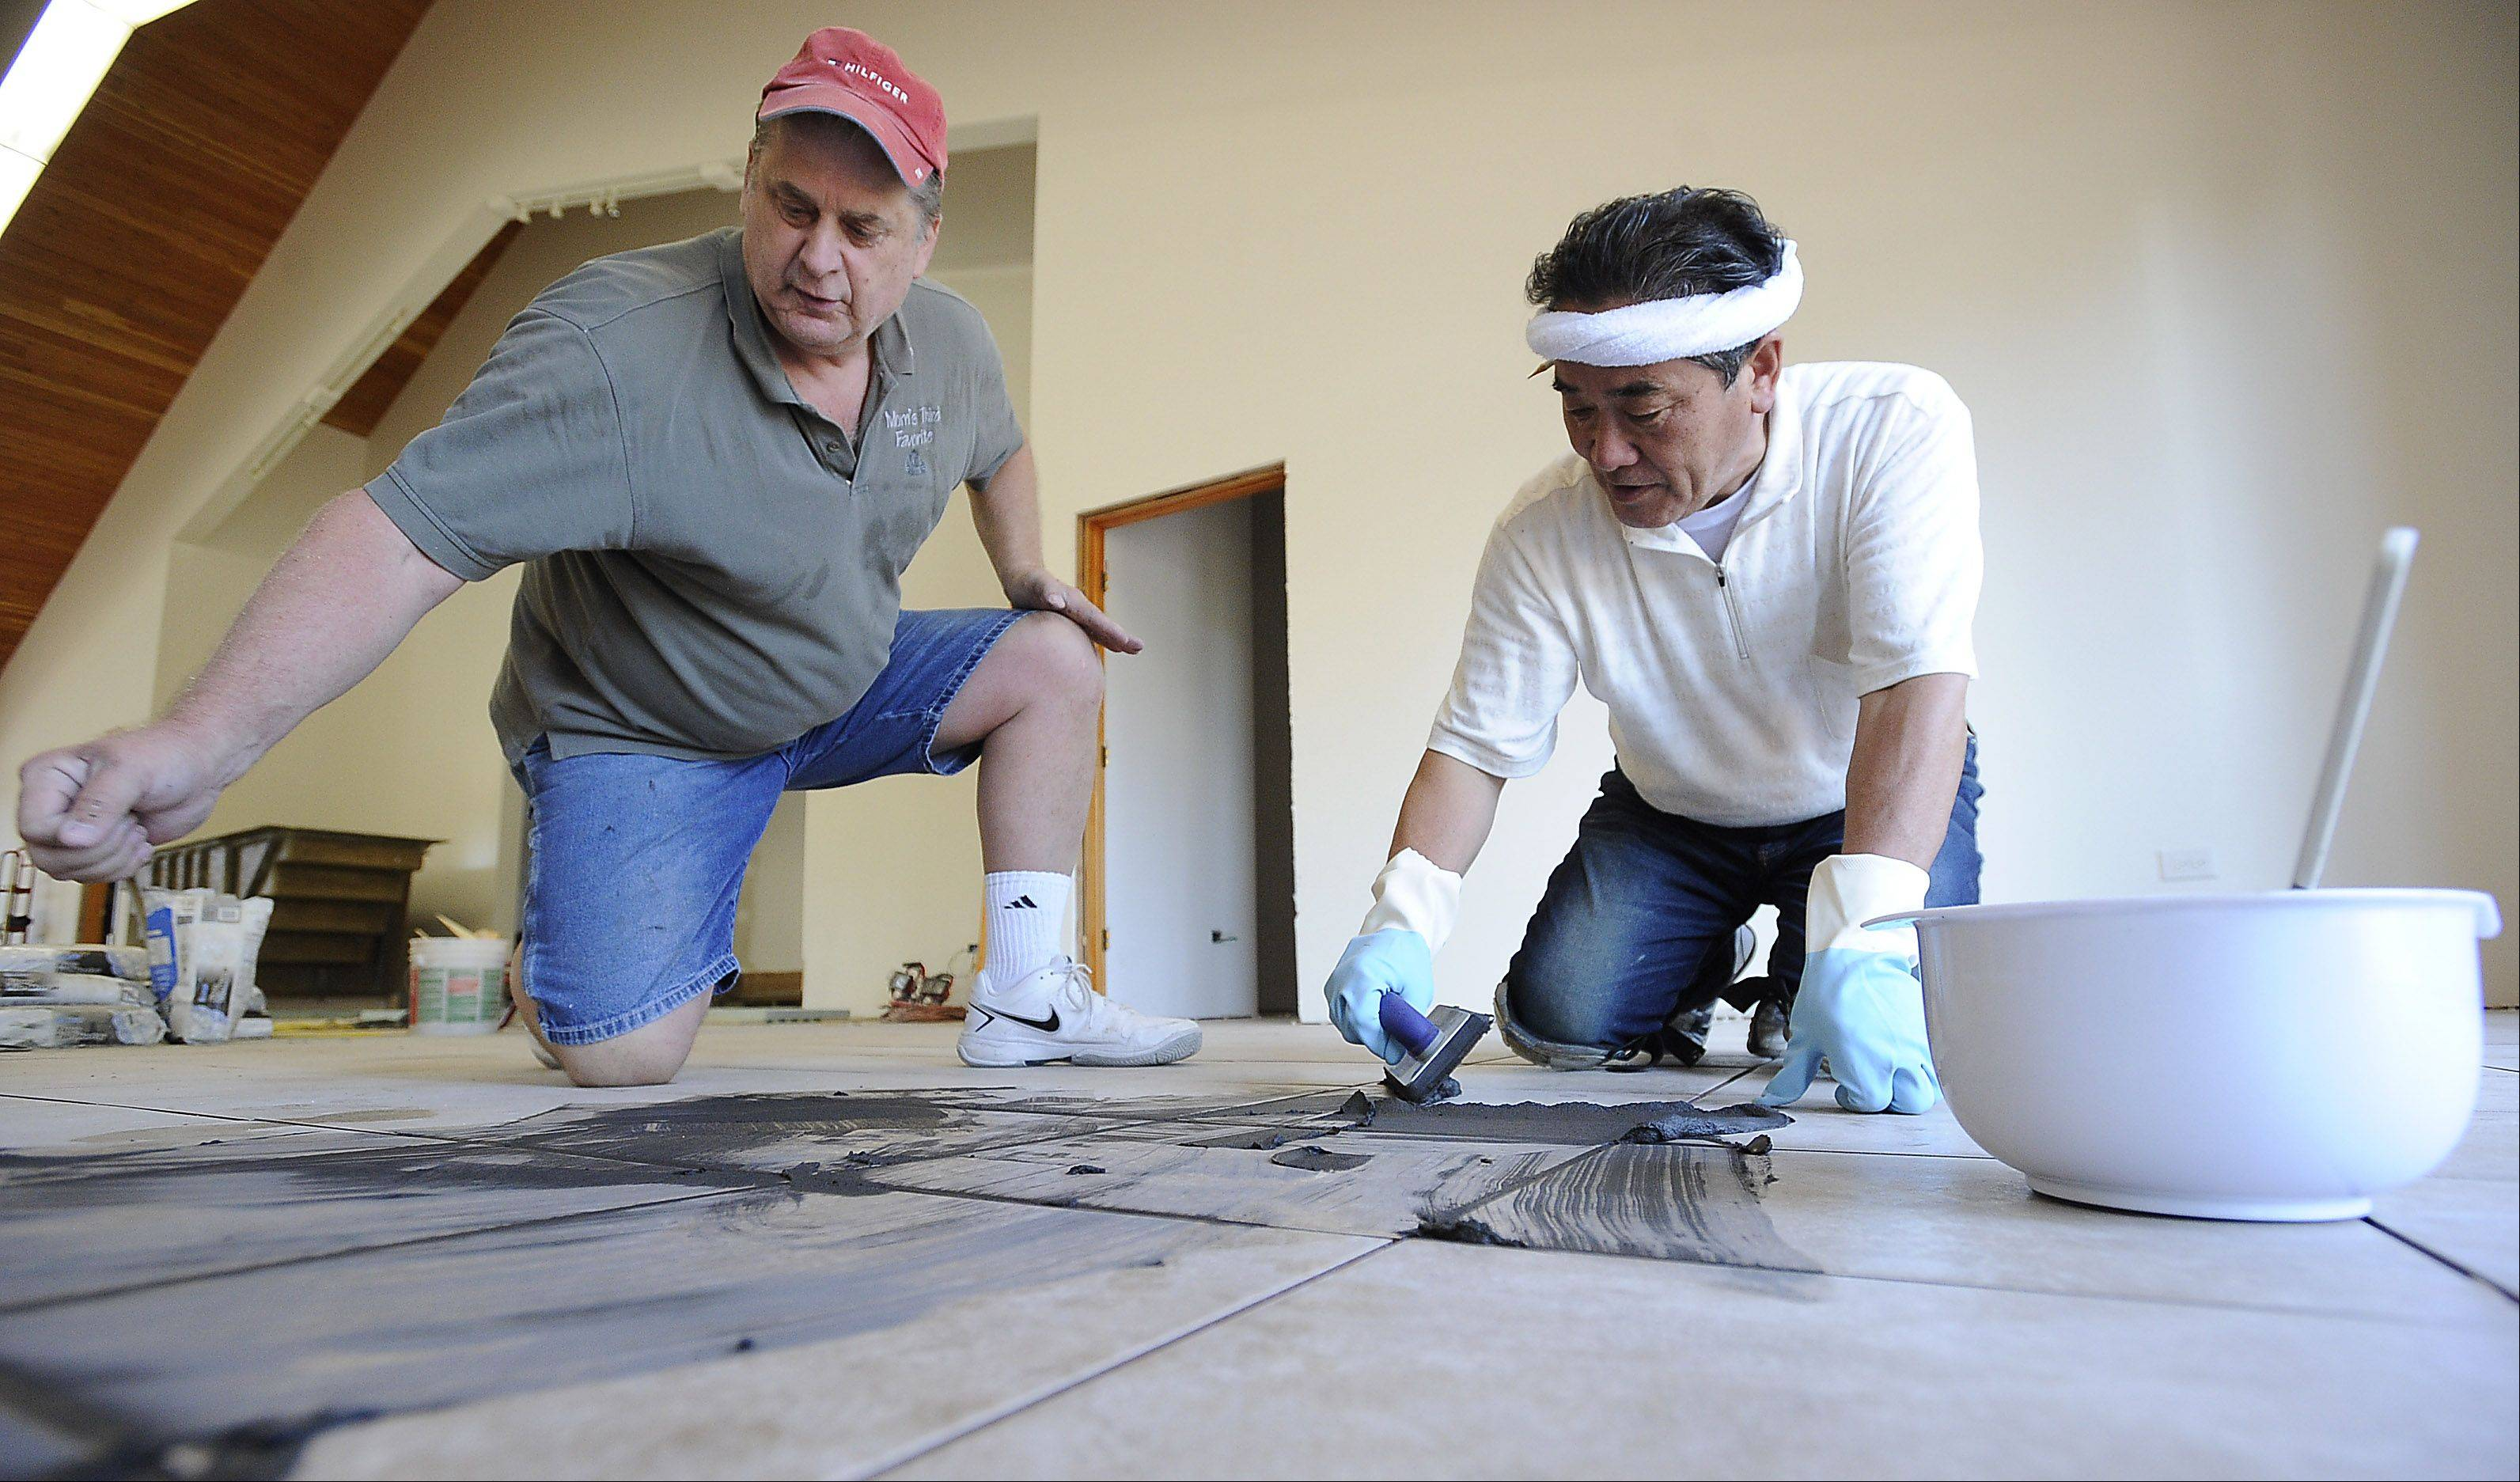 Rich Meyer of Mount Prospect shows Takahiro Tsutsui how he grouts the tile floor at the Chicago Japanese Mission Church in Arlington Heights. Tsutsui flew in from his native Japan recently to assist with the church's construction.